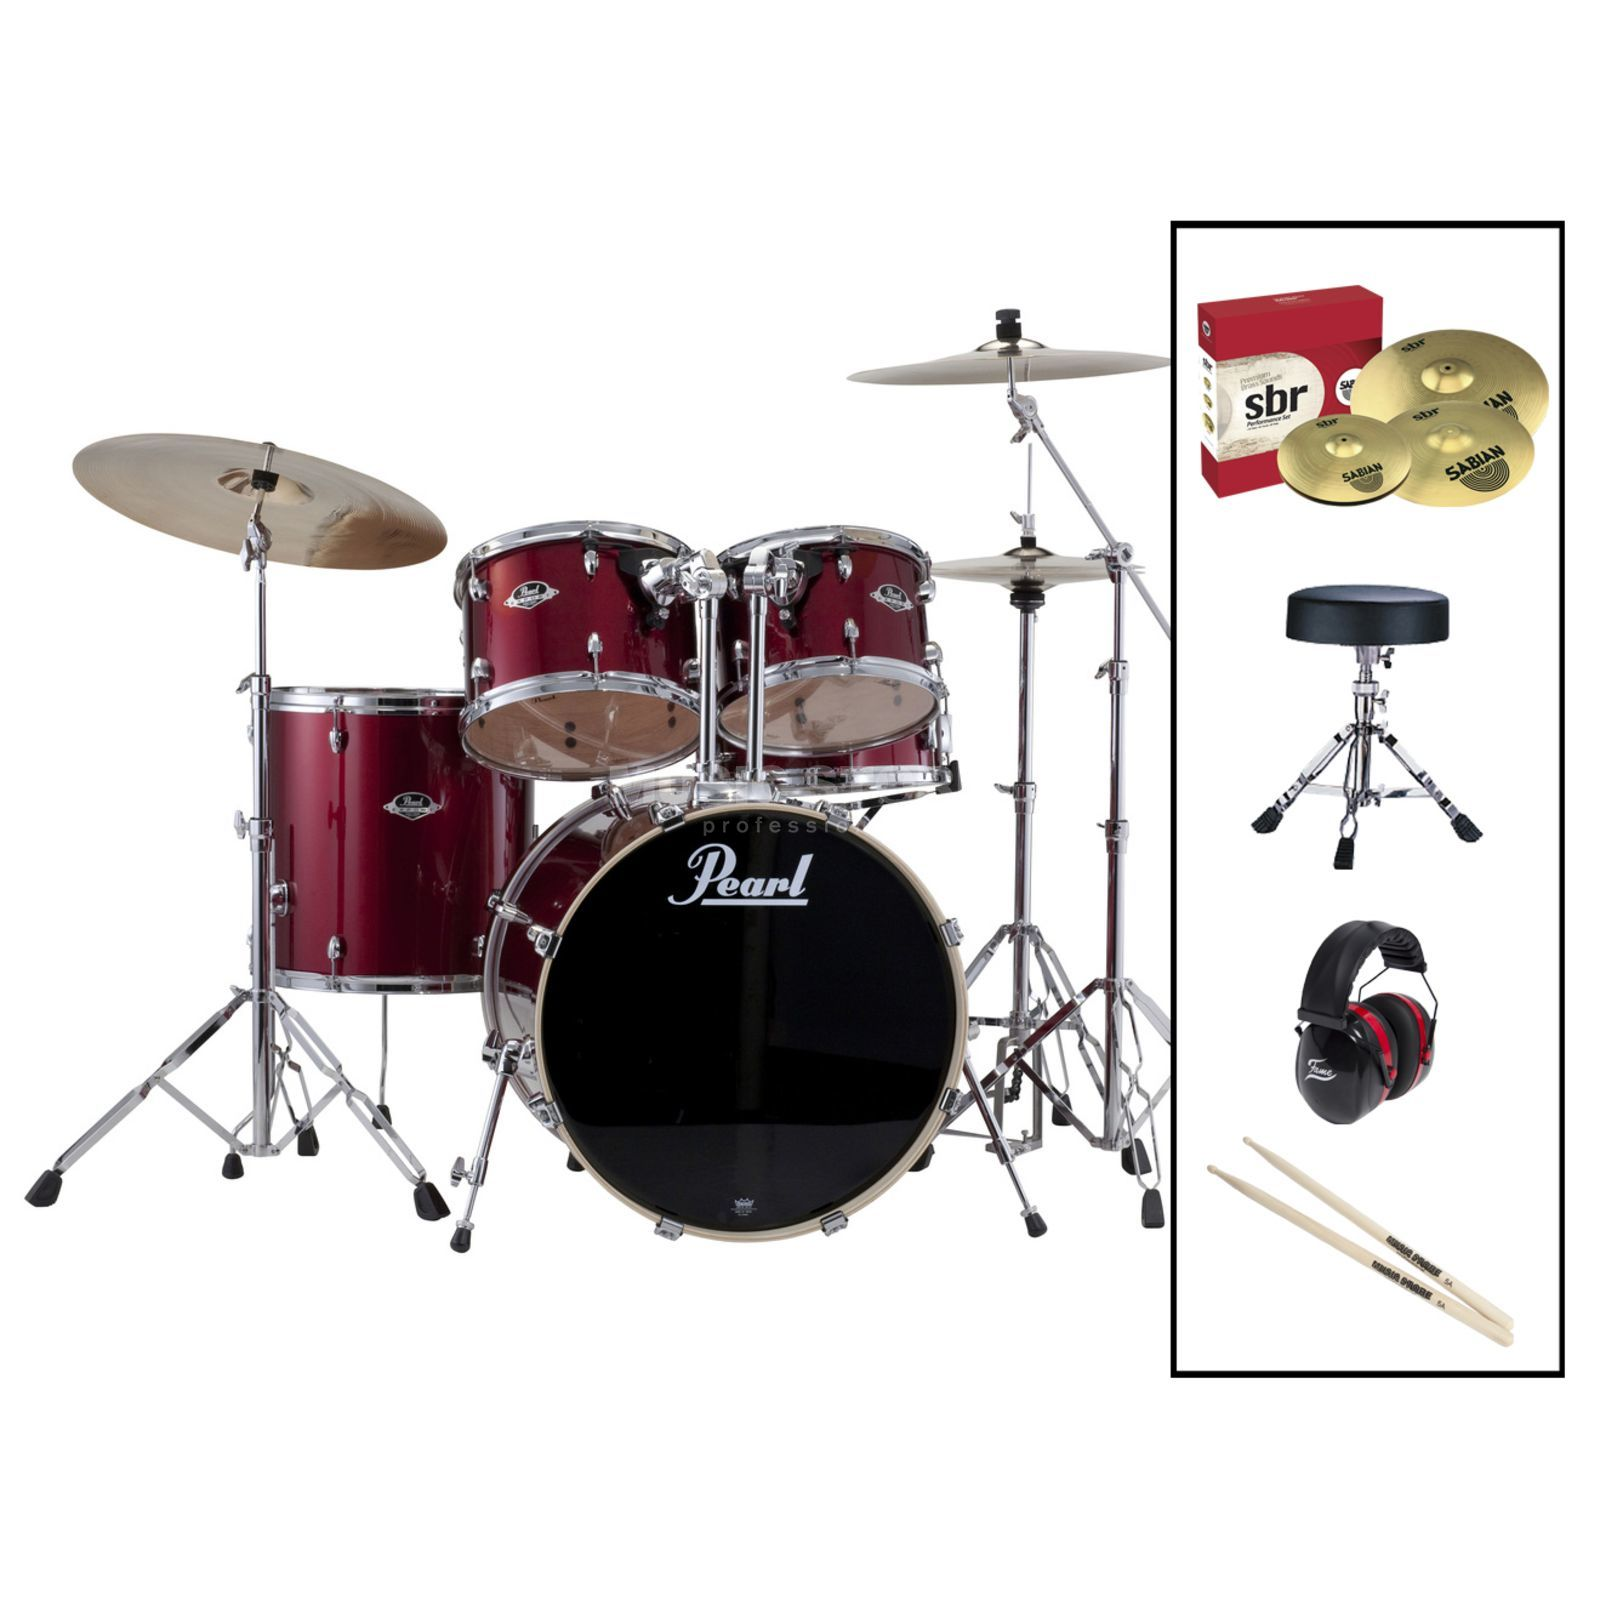 SET Pearl Export 725Z/C-91 inkl. Hocker, Gehörschutz & Sticks Produktbillede